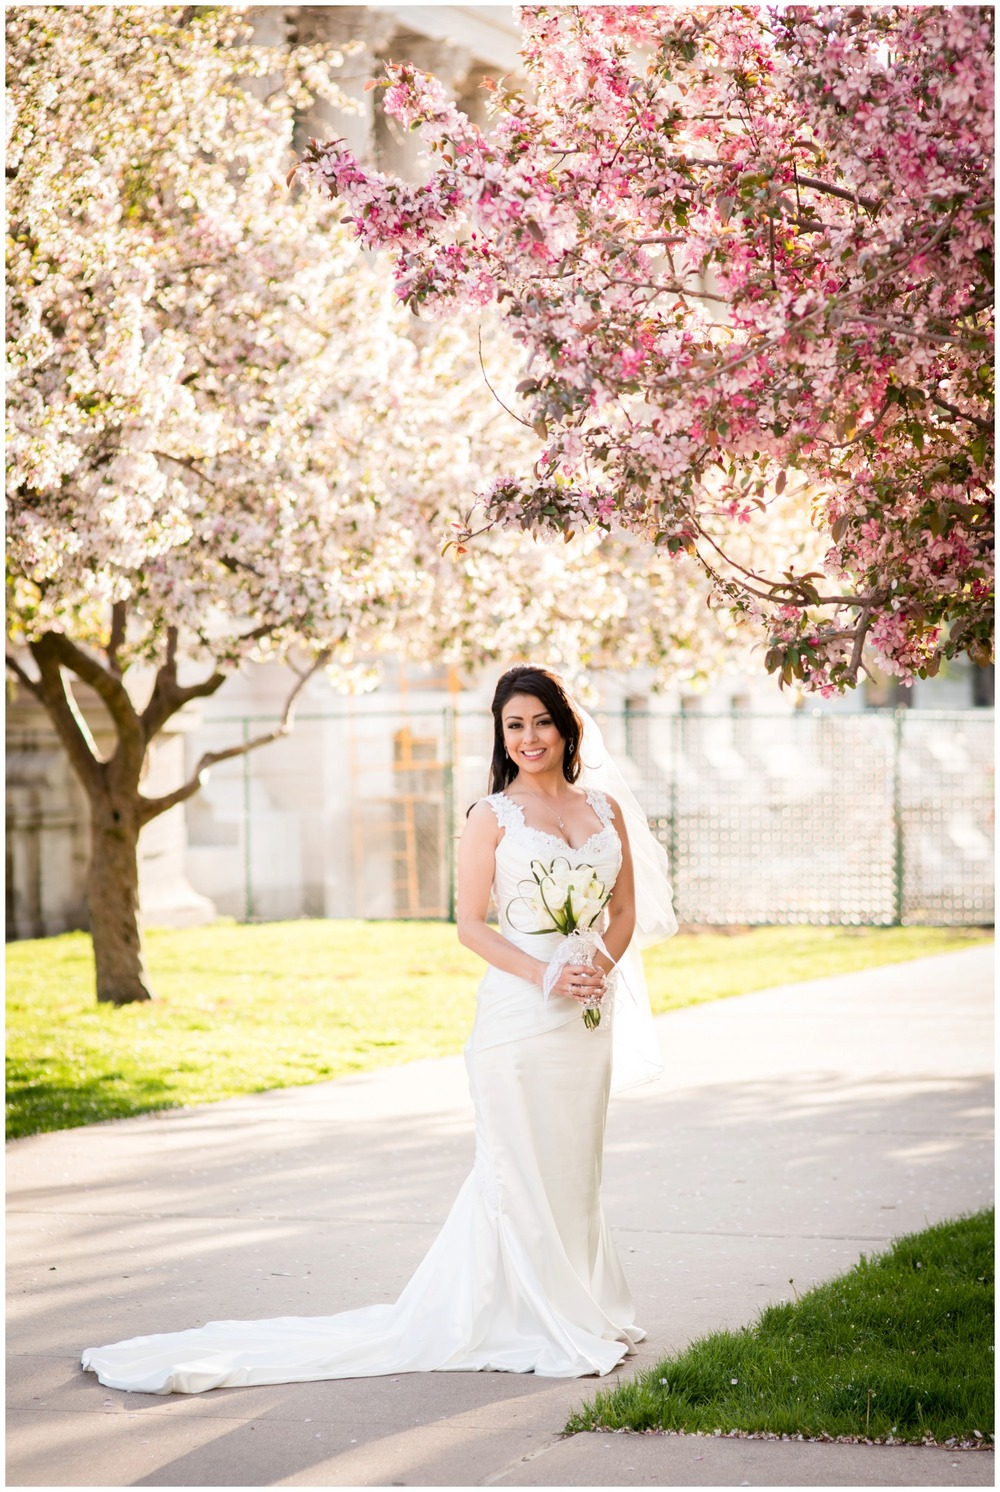 Latin Bride standing under apple blossom trees